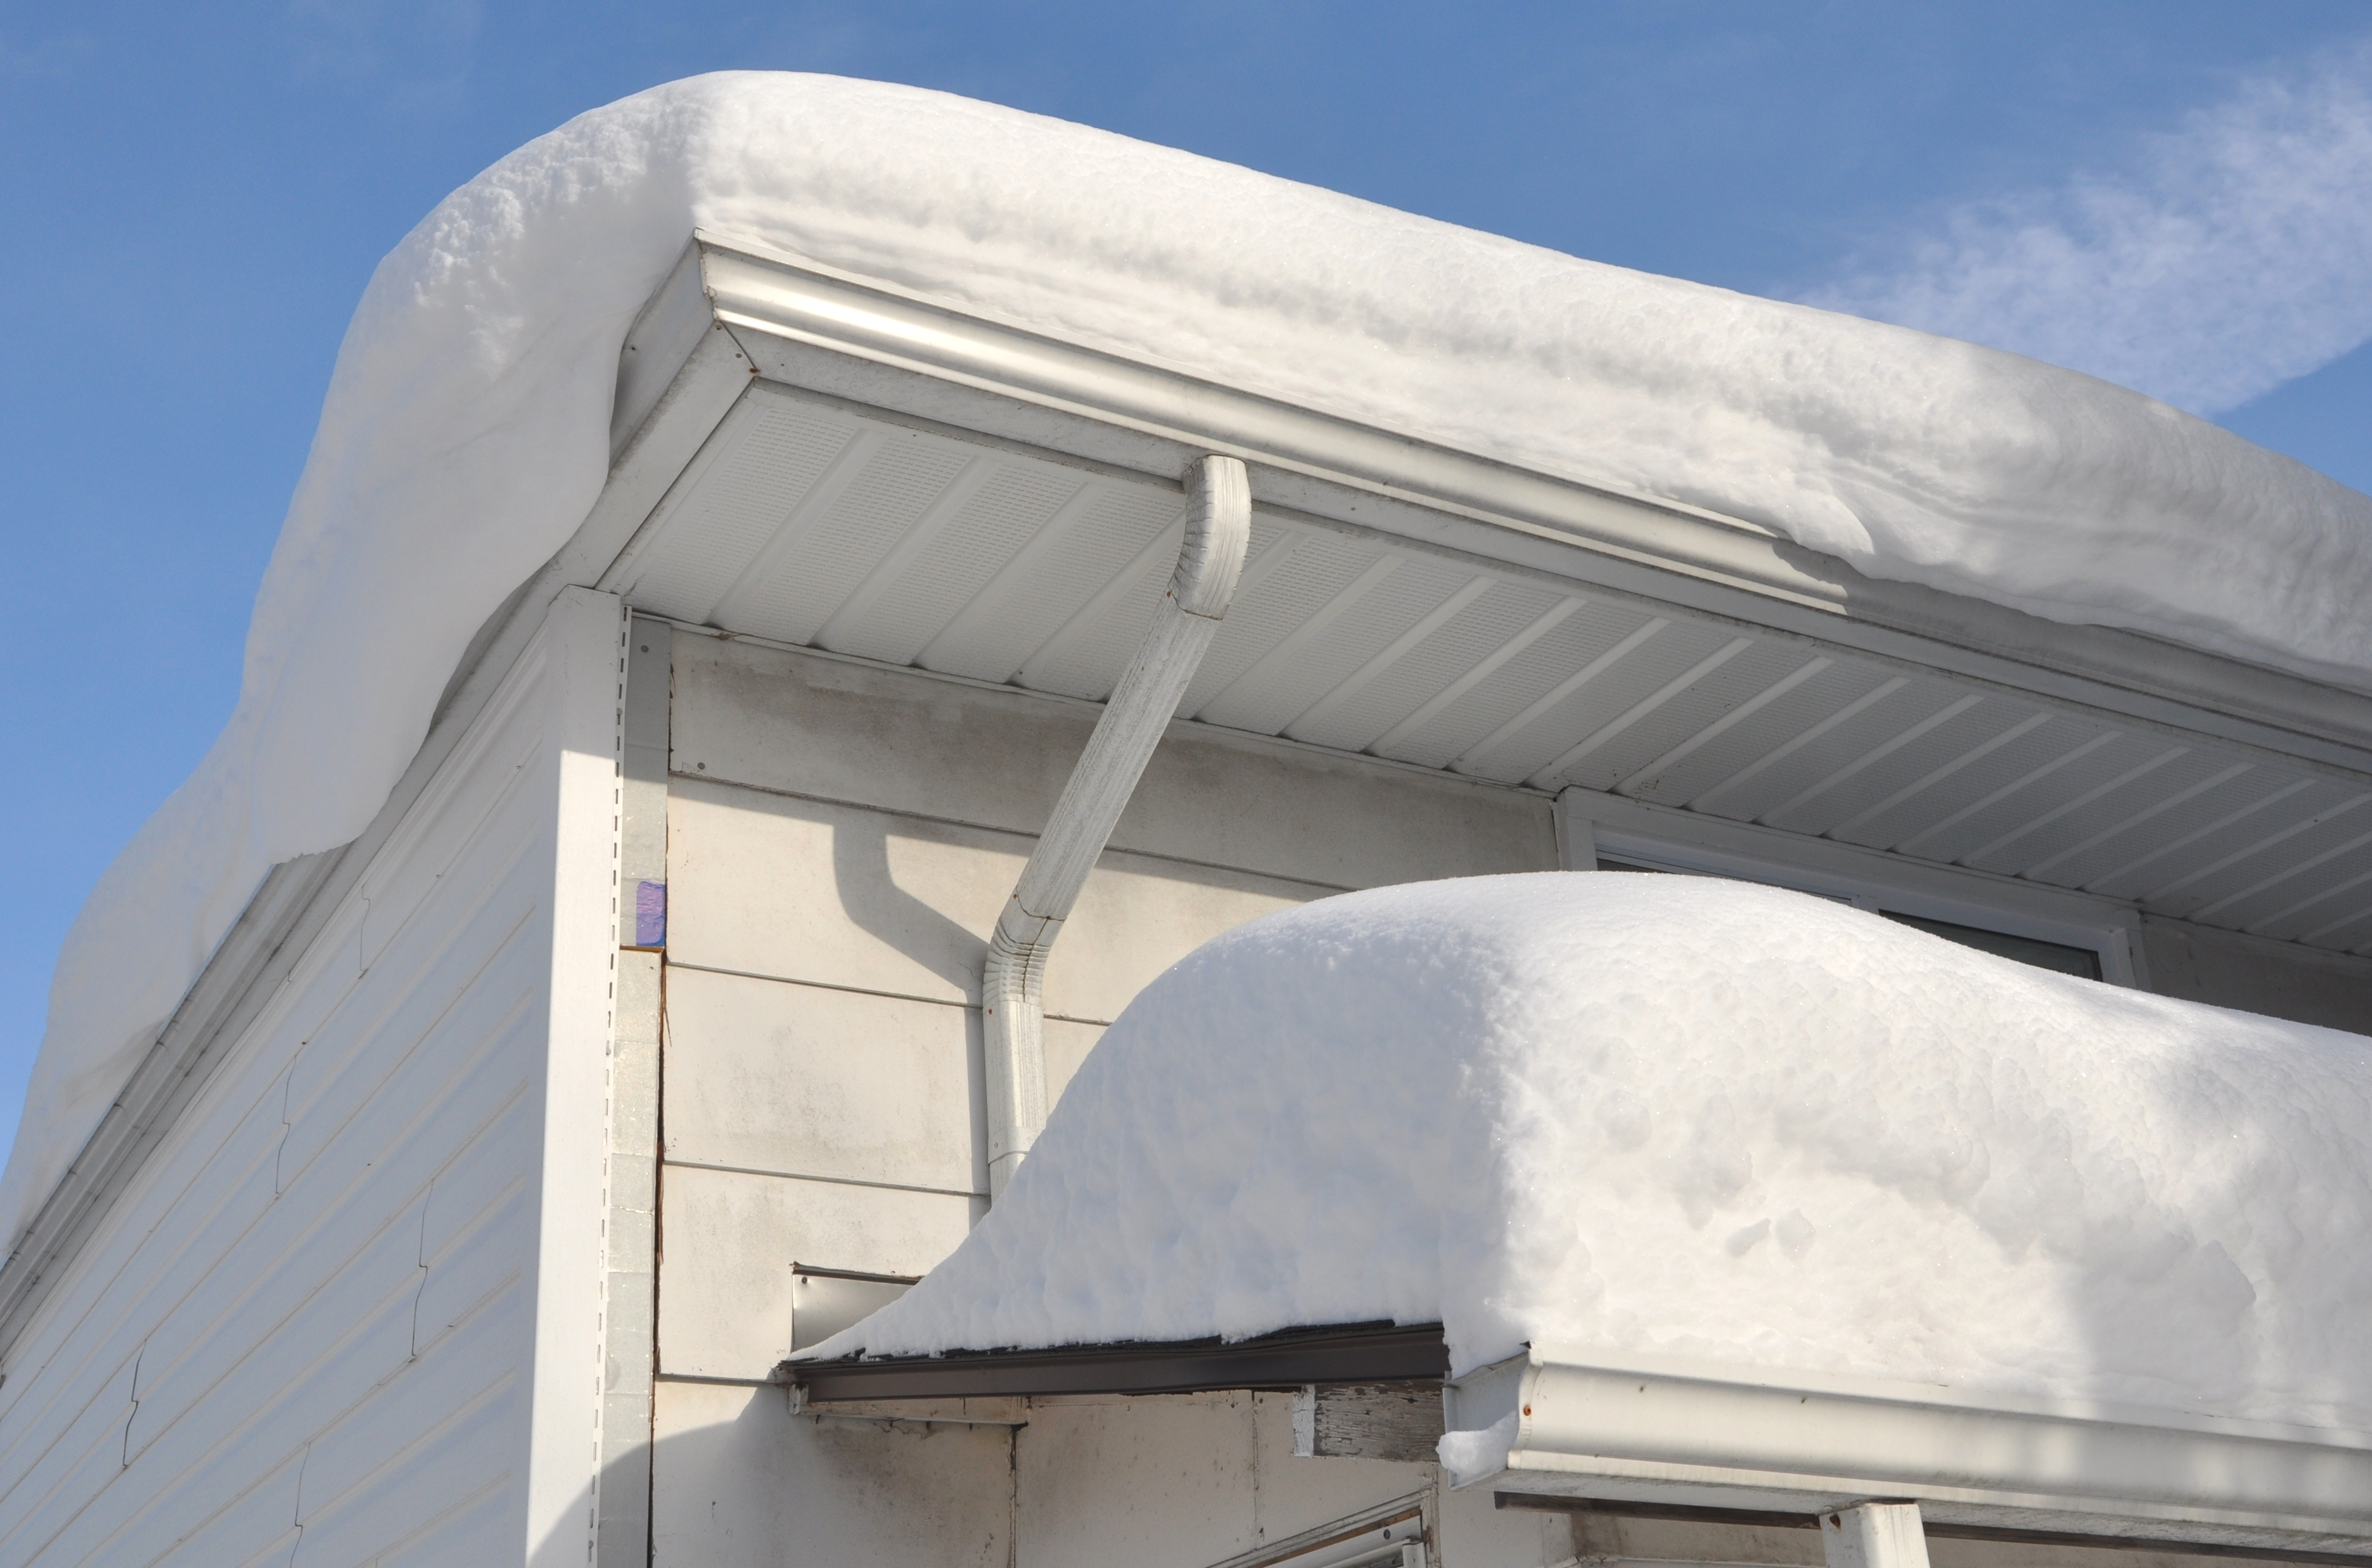 Can Heavy Snow Damage My Roof?